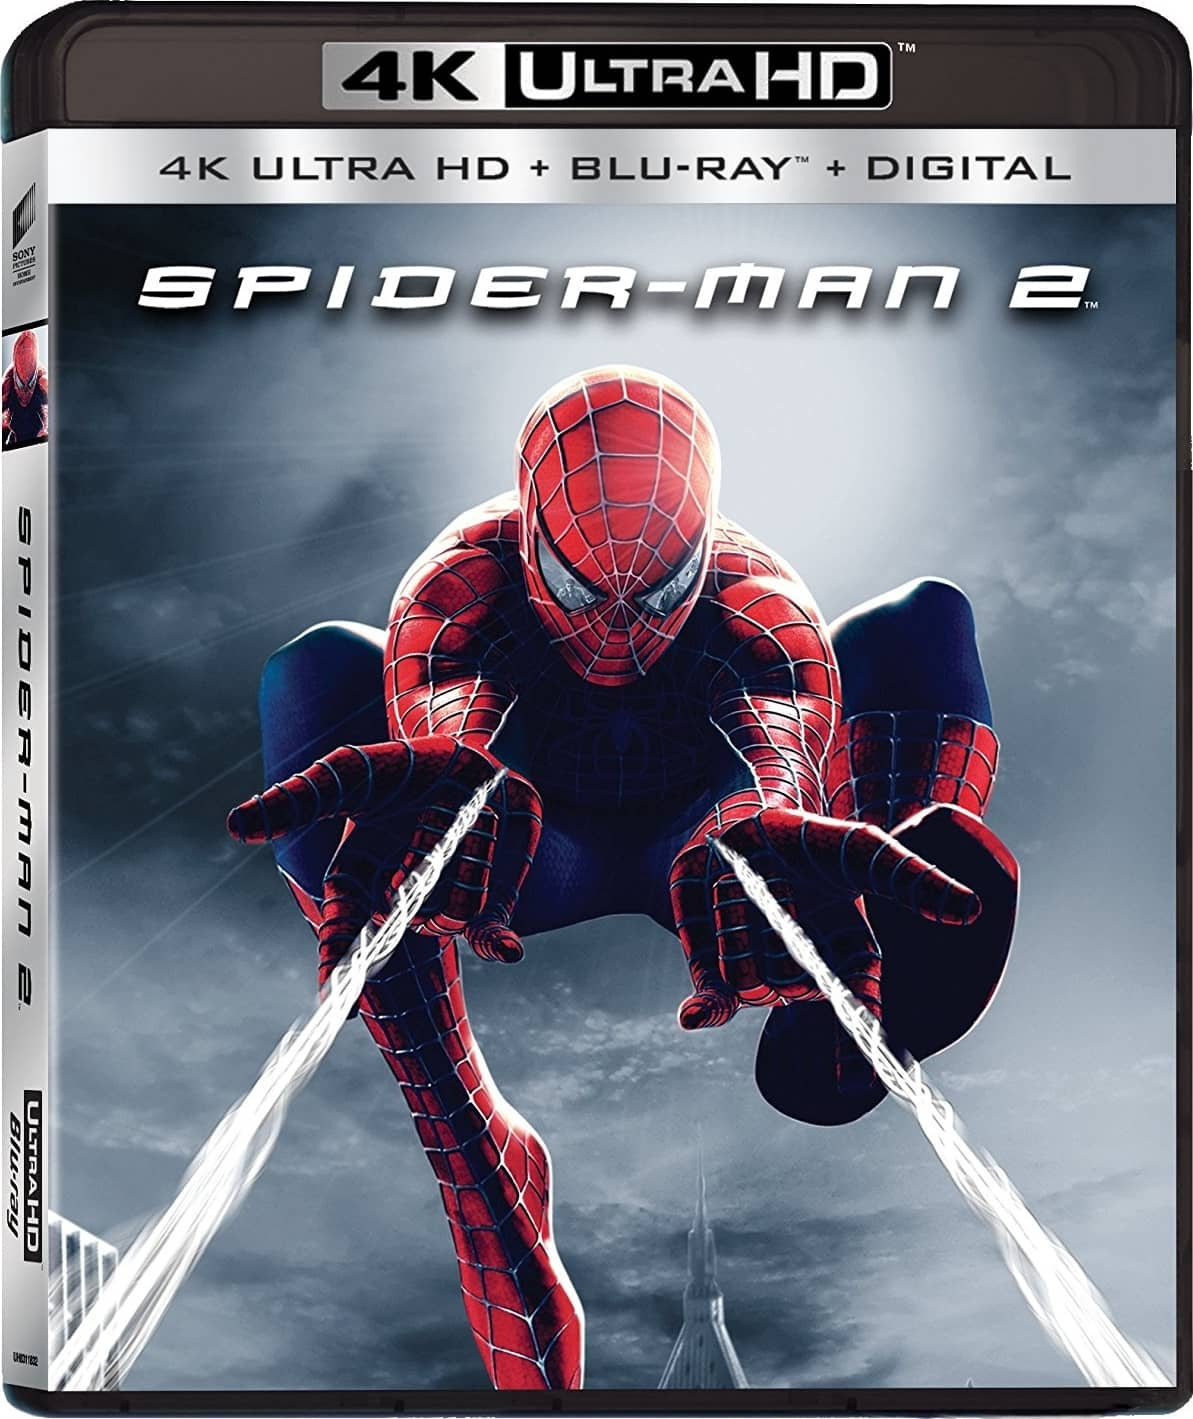 Spider-Man 2 2004 REMUX HDR 4K Ultra HD